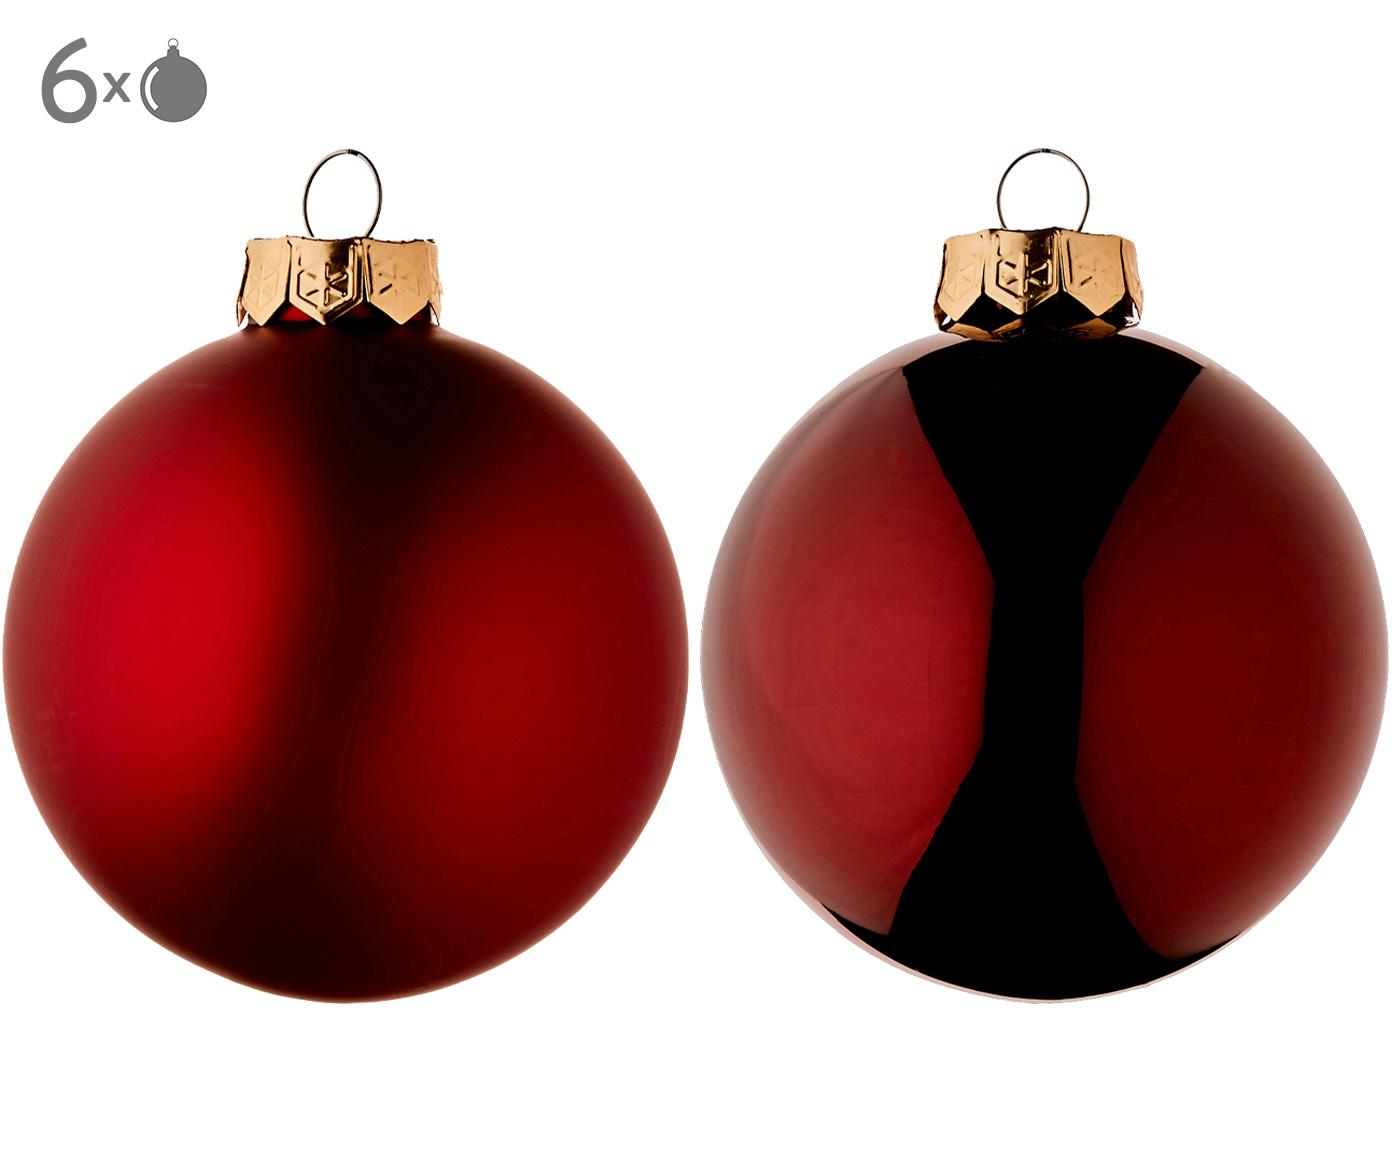 Weihnachtskugel-Set Evergreen, 6-tlg., Rot, Ø 8 cm